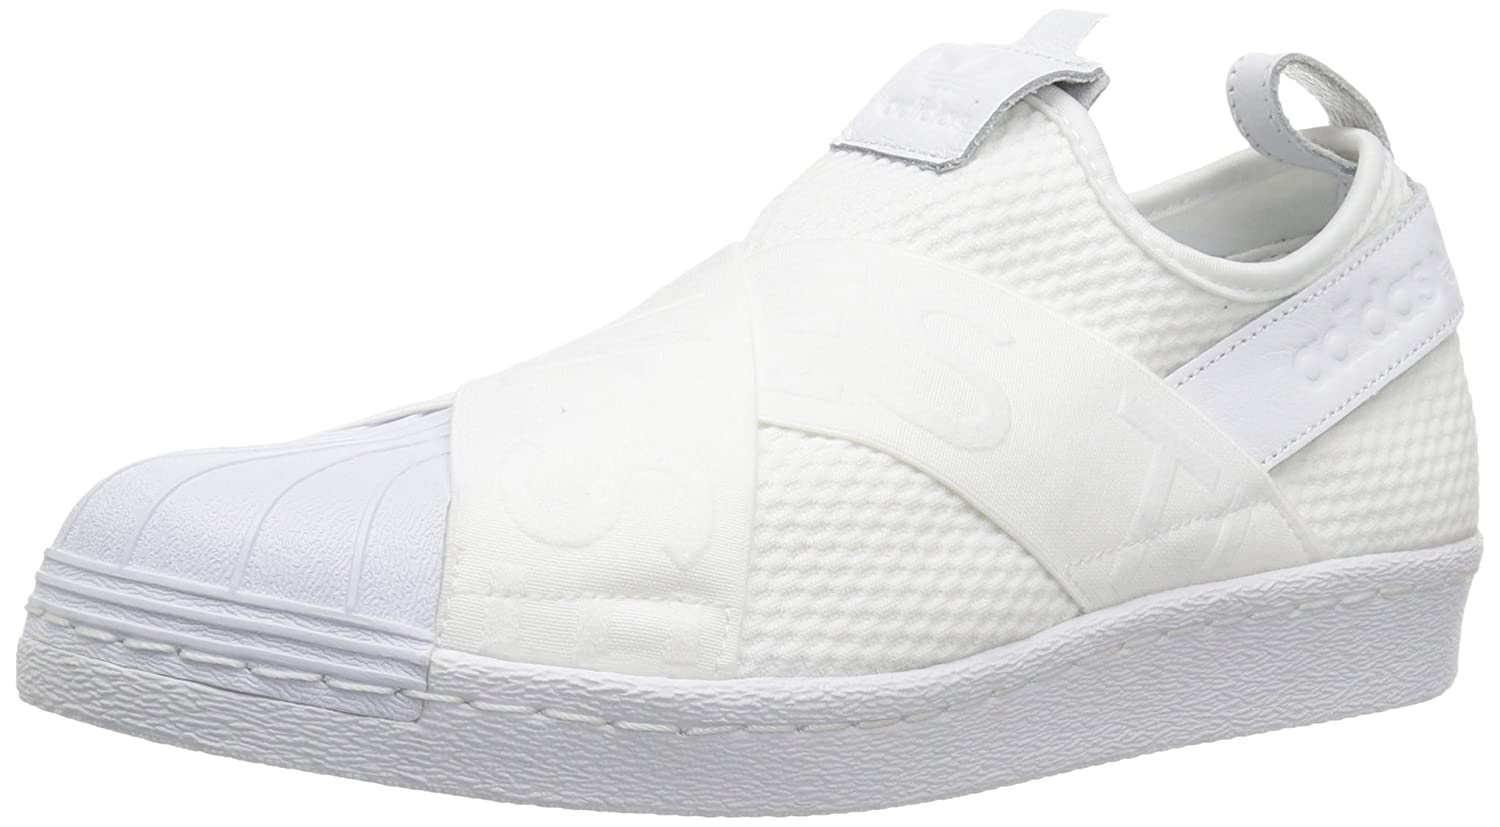 official photos 62ed5 e7109 Adidas ORIGINALS Women's Superstar Slipon W Sneaker: Amazon ...